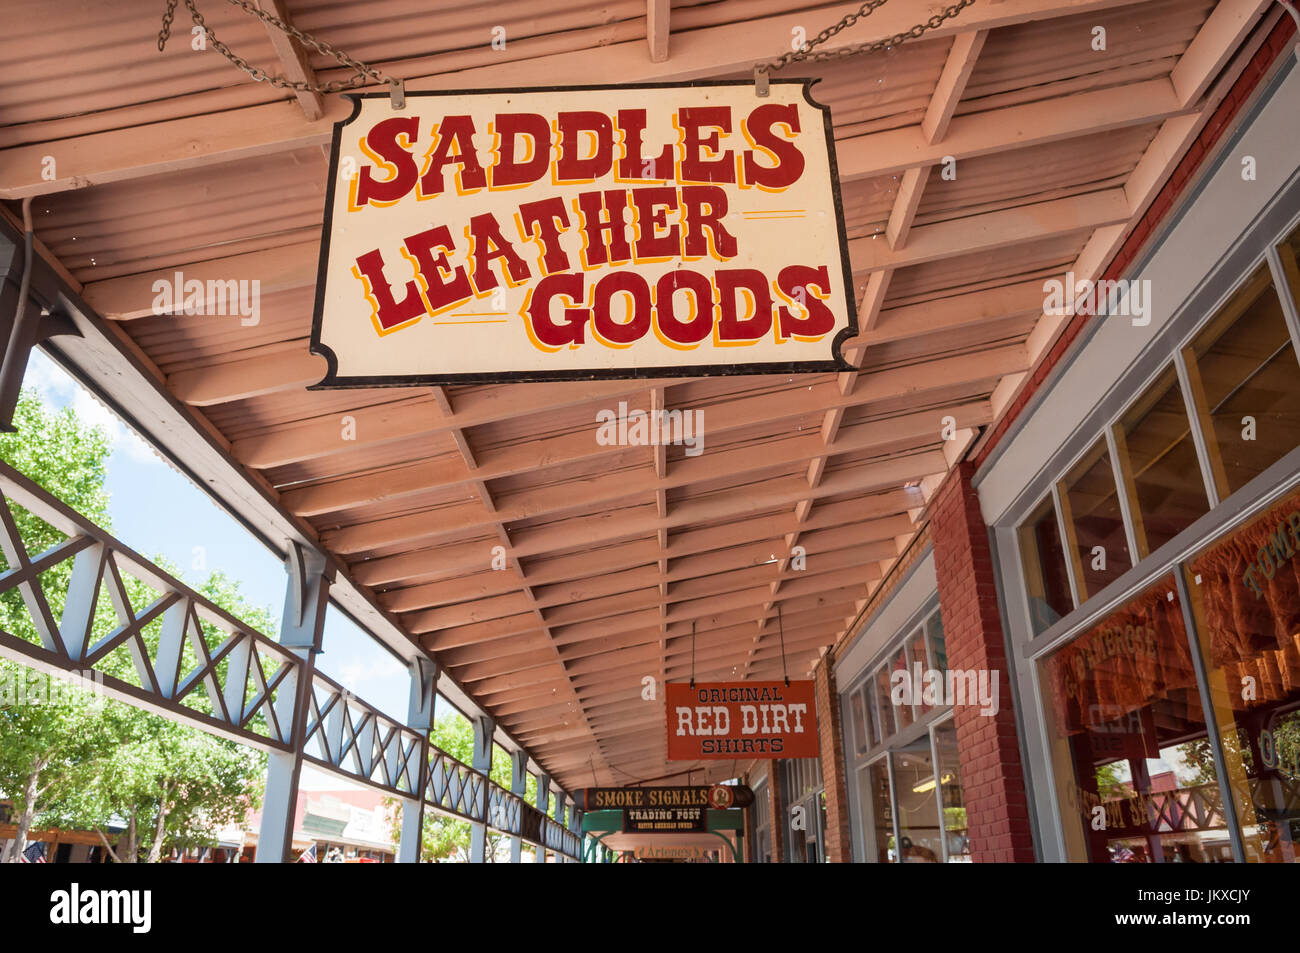 Sign over saddle and leather goods boutique, Tombstone Arizona - Stock Image